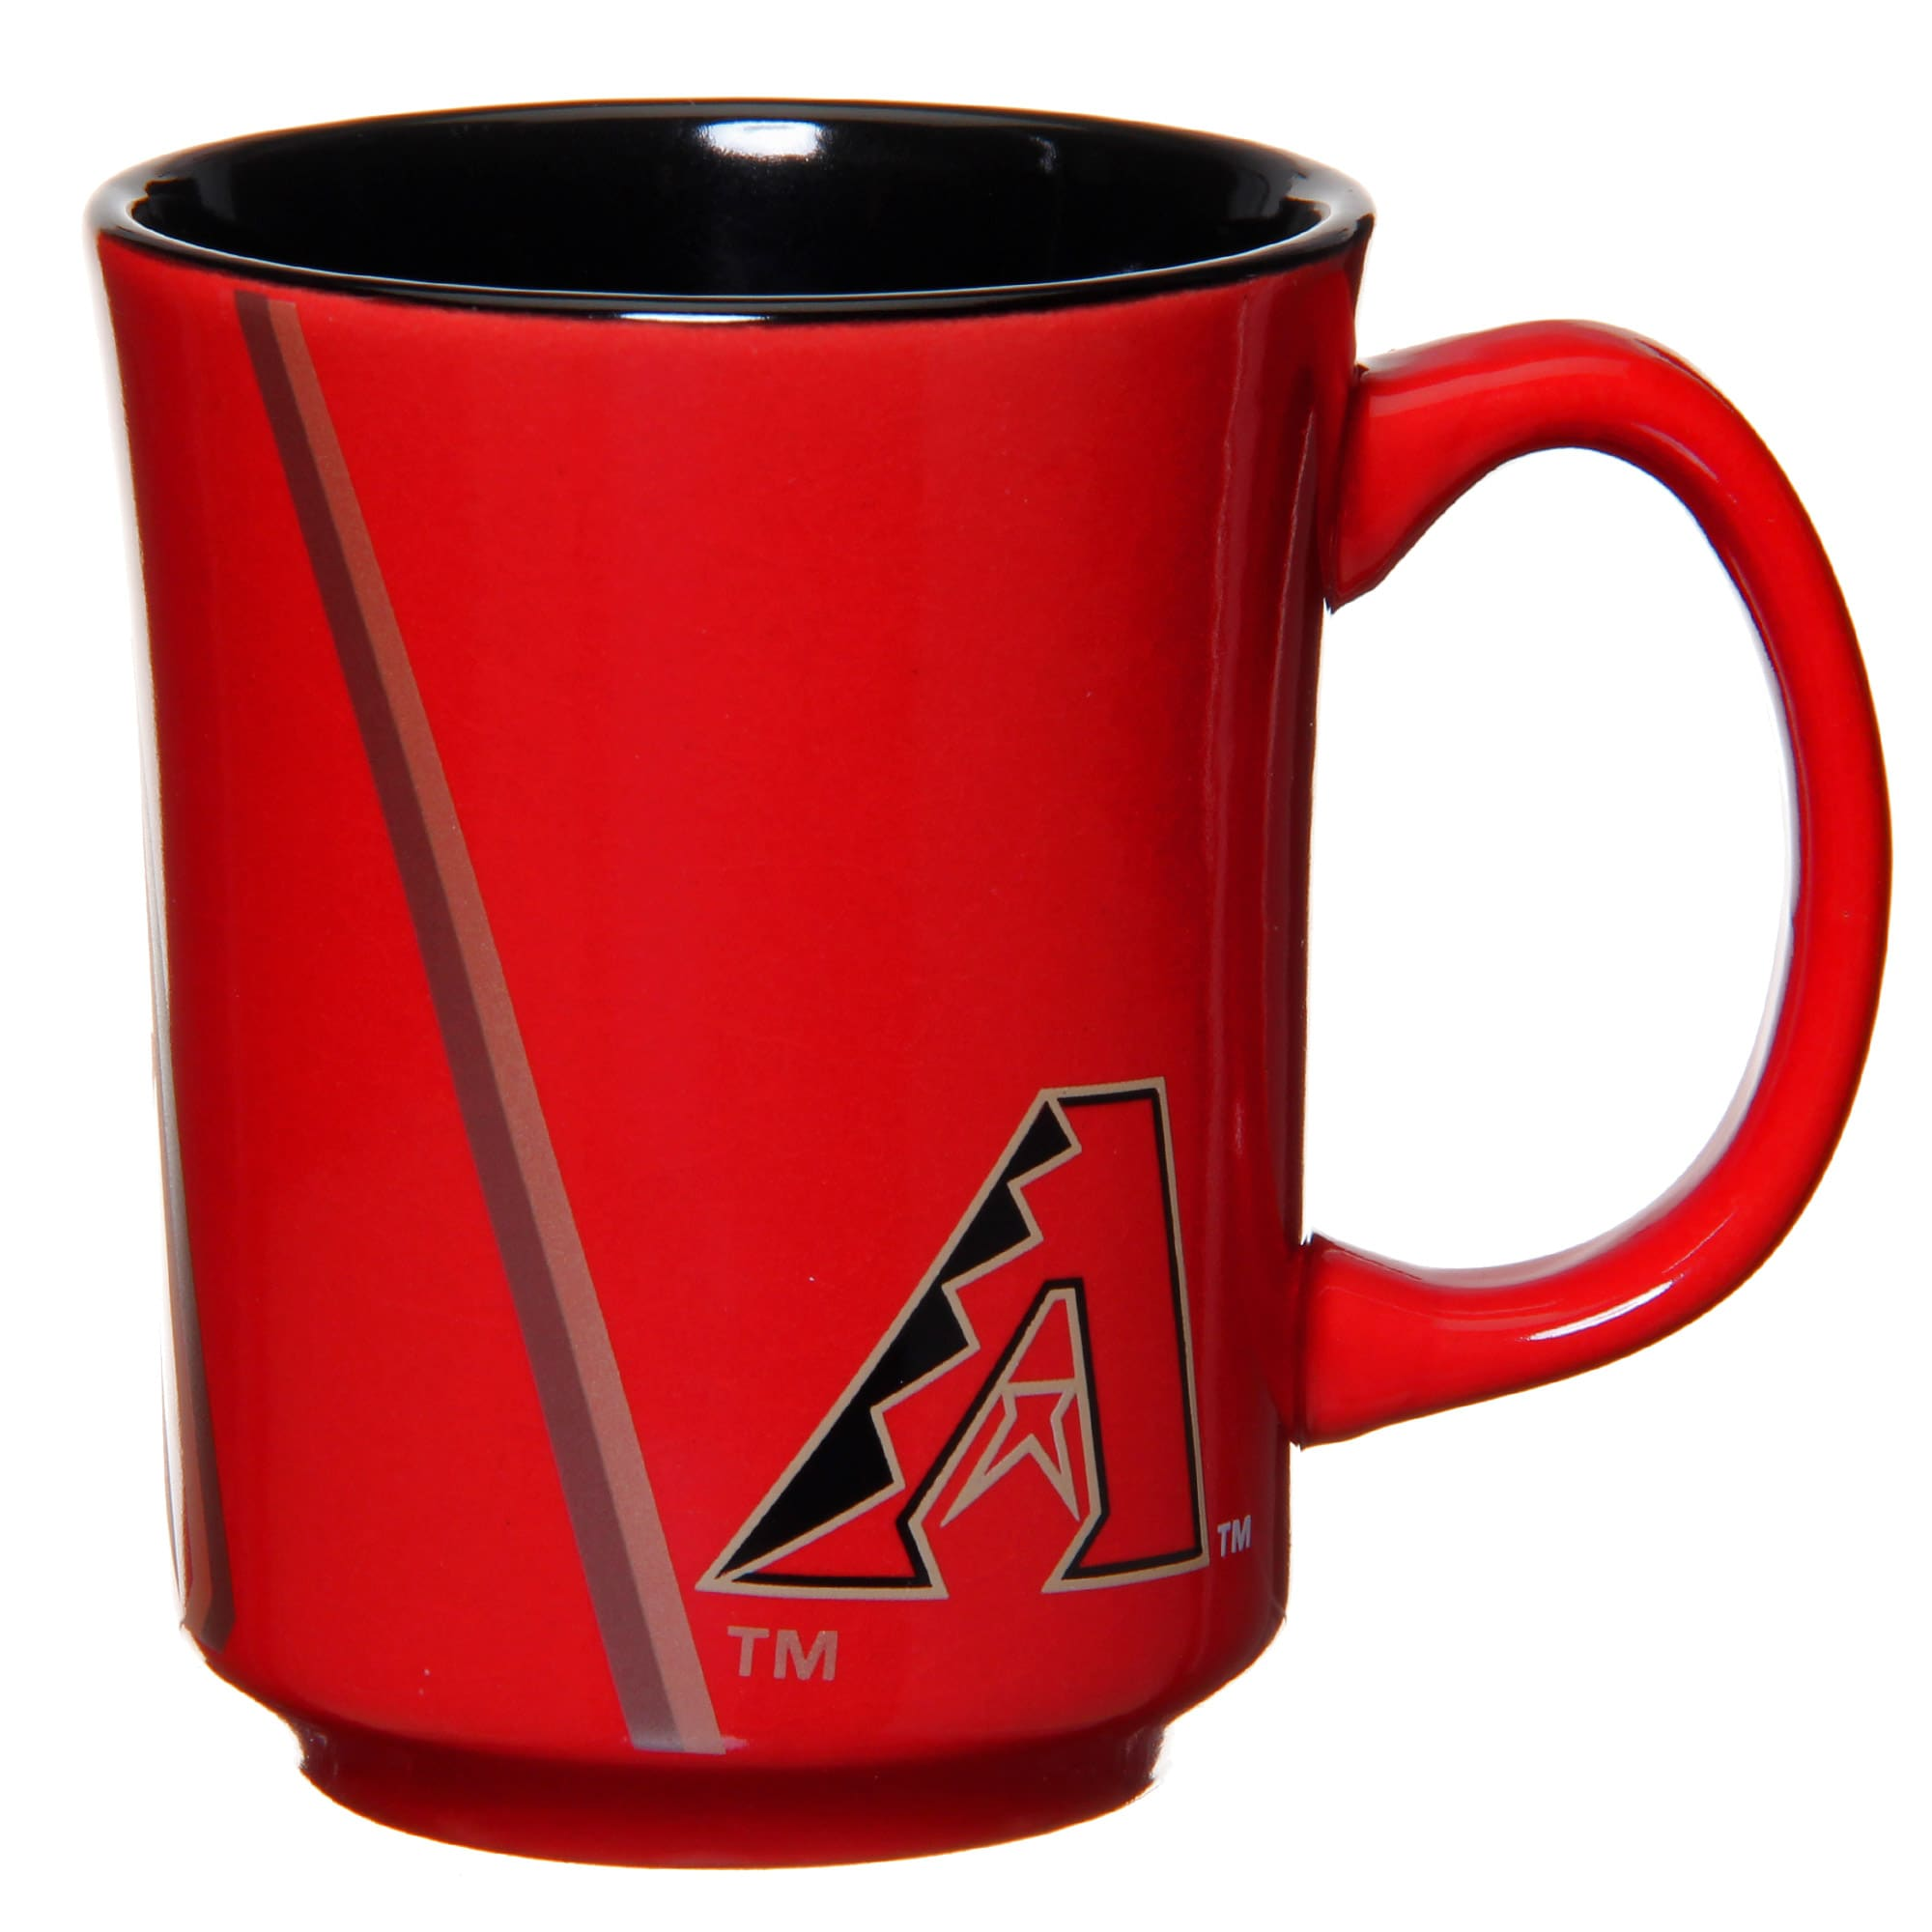 Arizona Diamondbacks 11oz. Reflective Mug